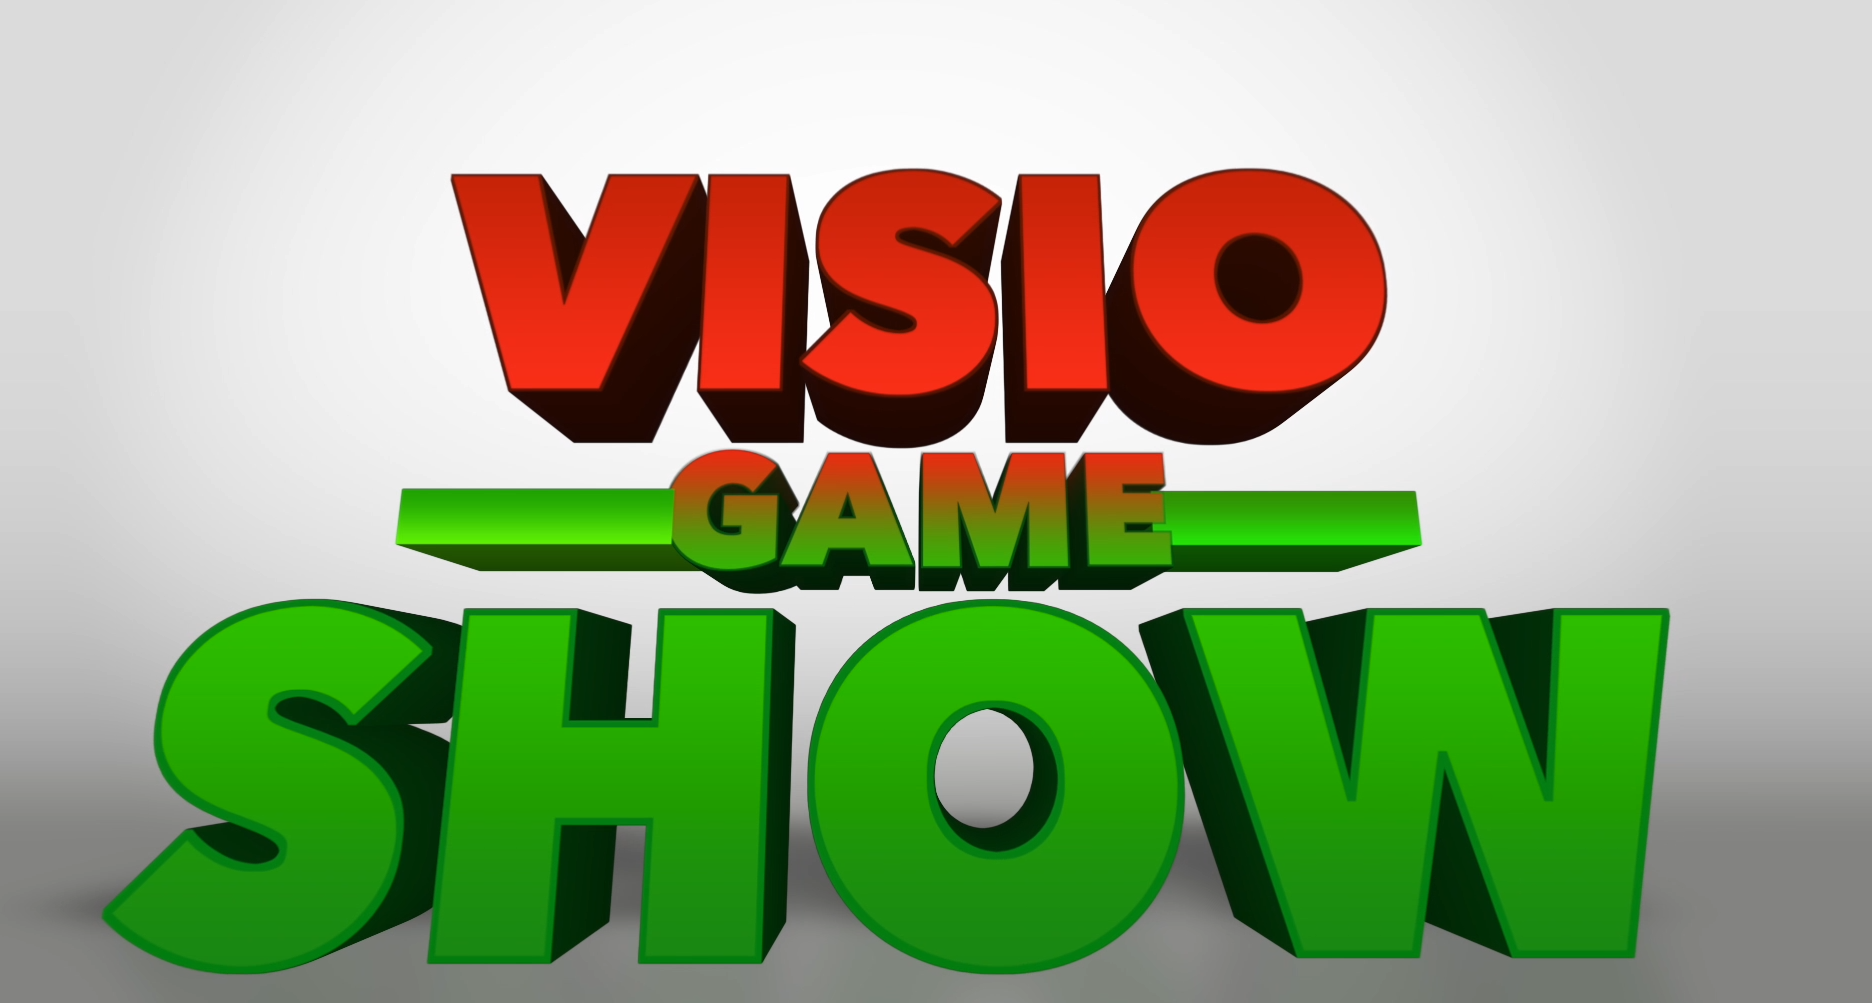 Visio Game Show